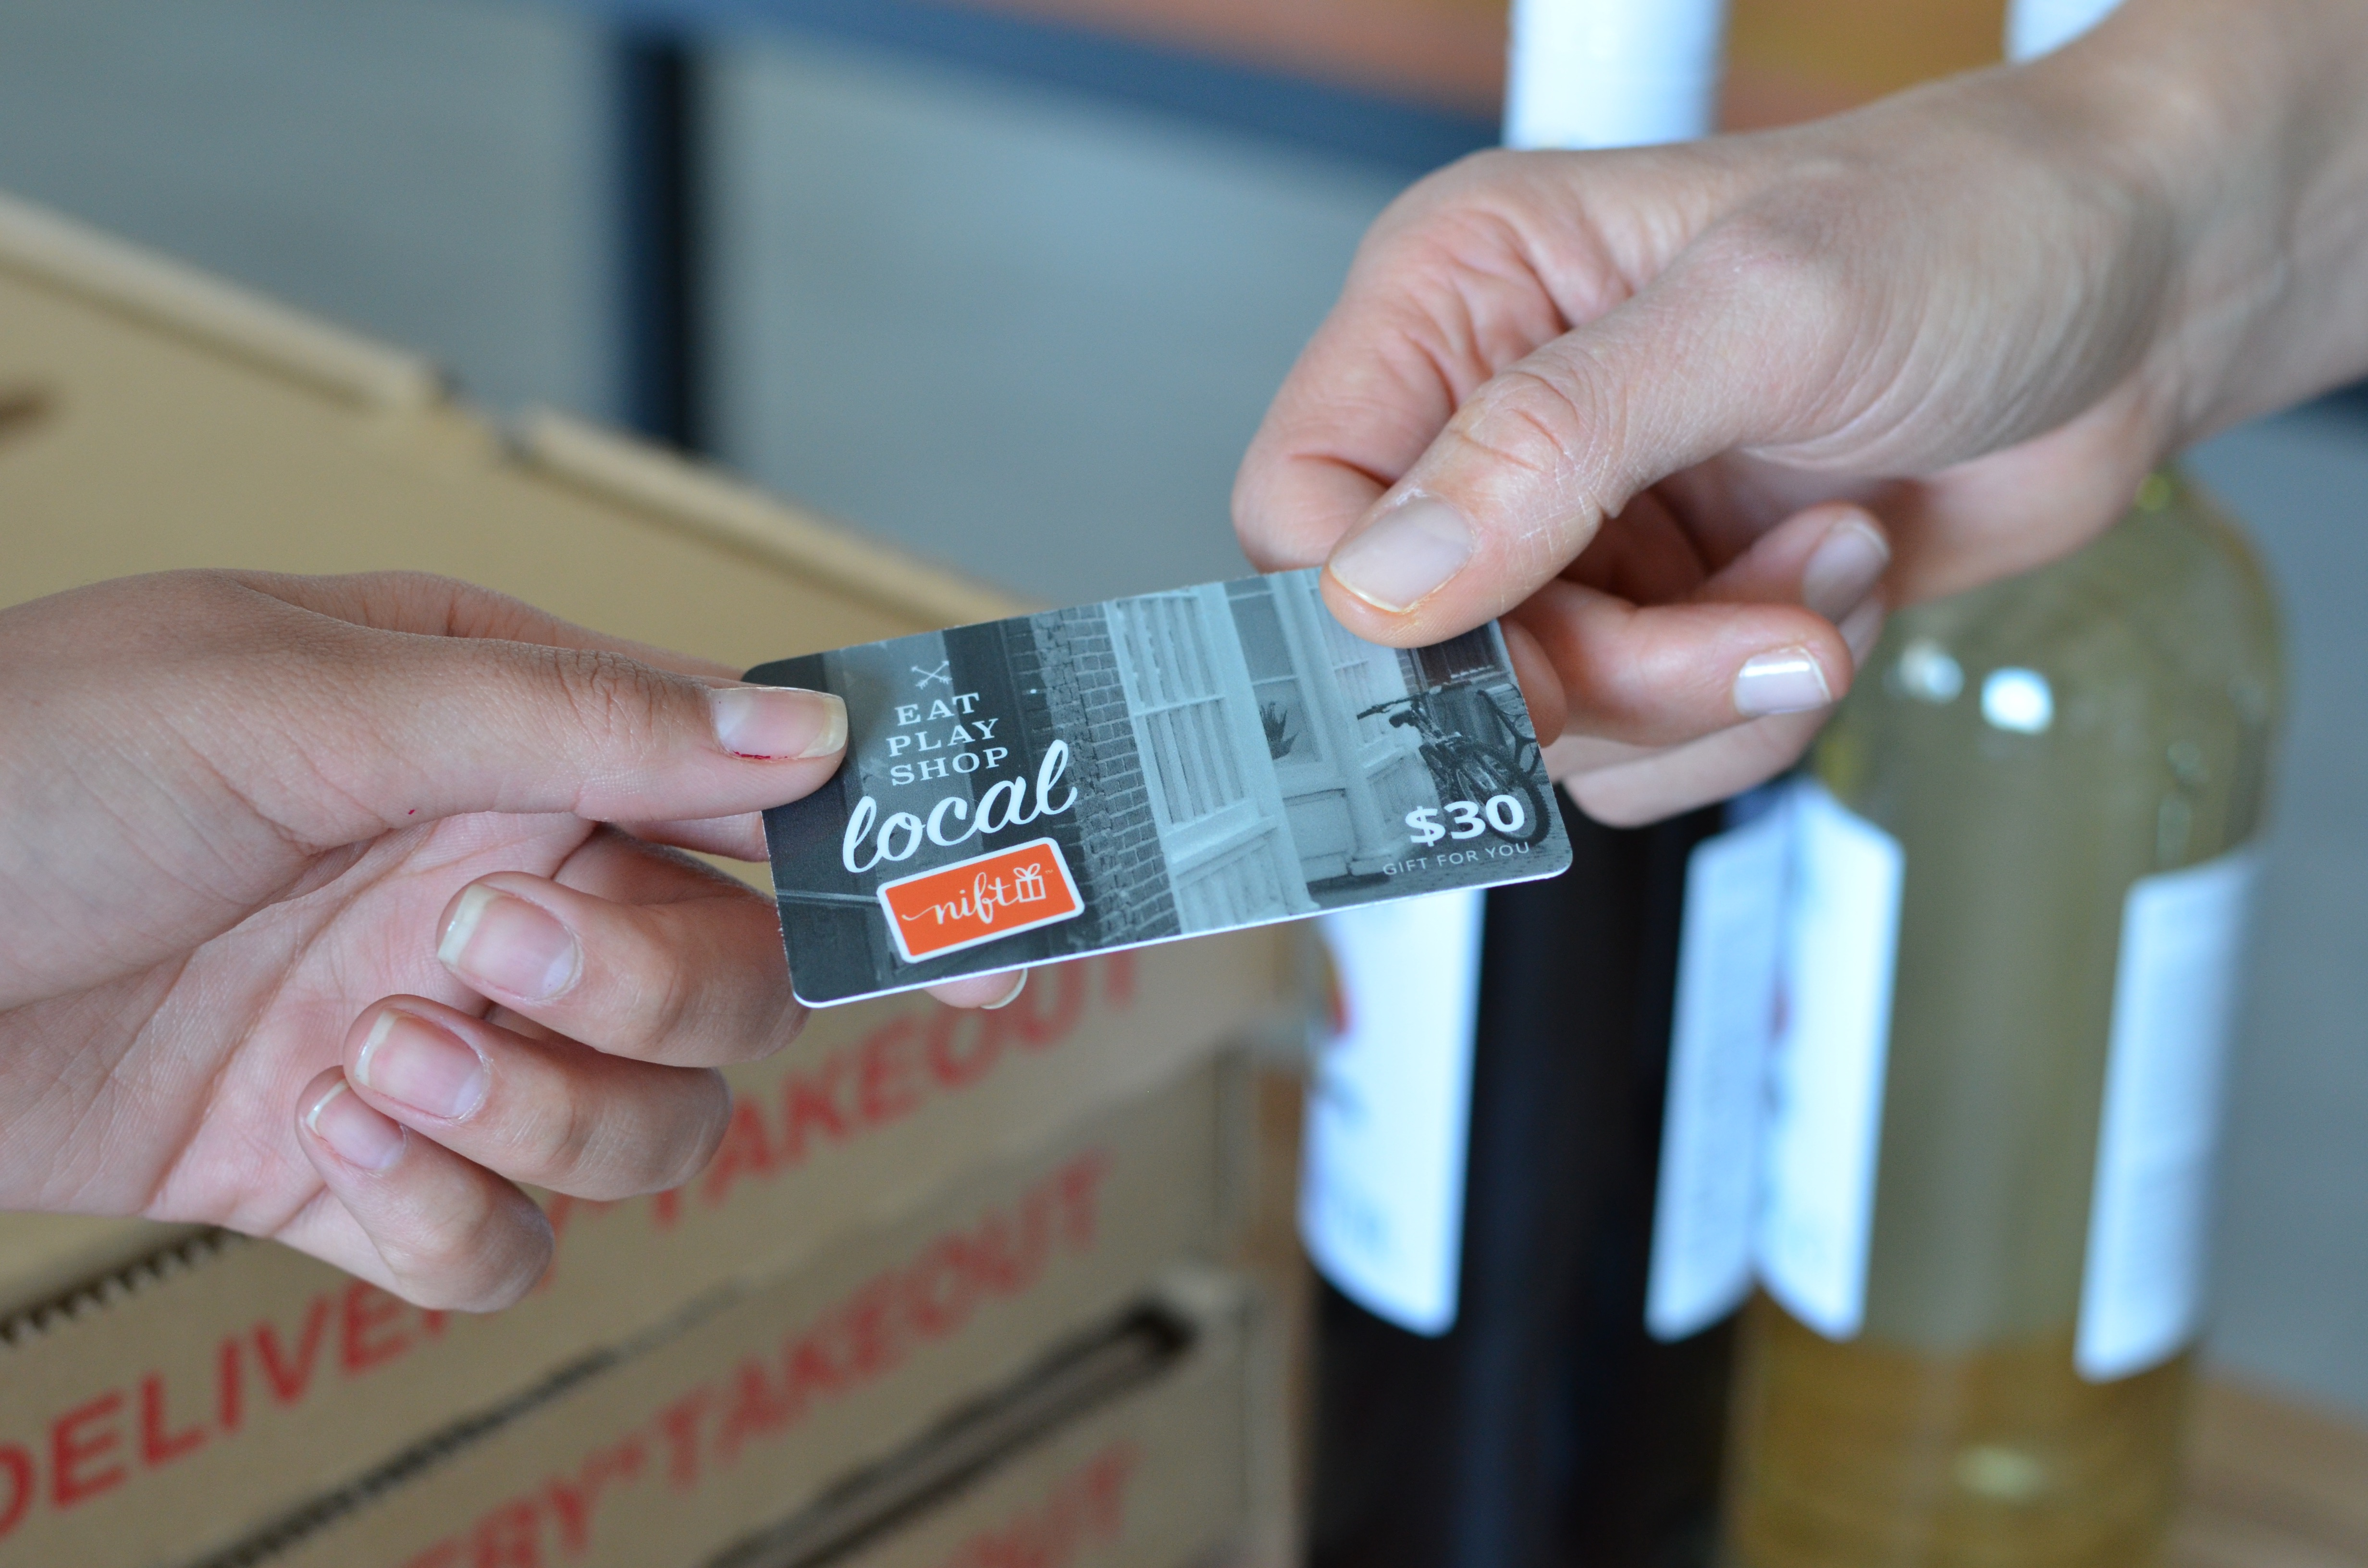 Nift raises $16 5M for a new kind of gift card | TechCrunch